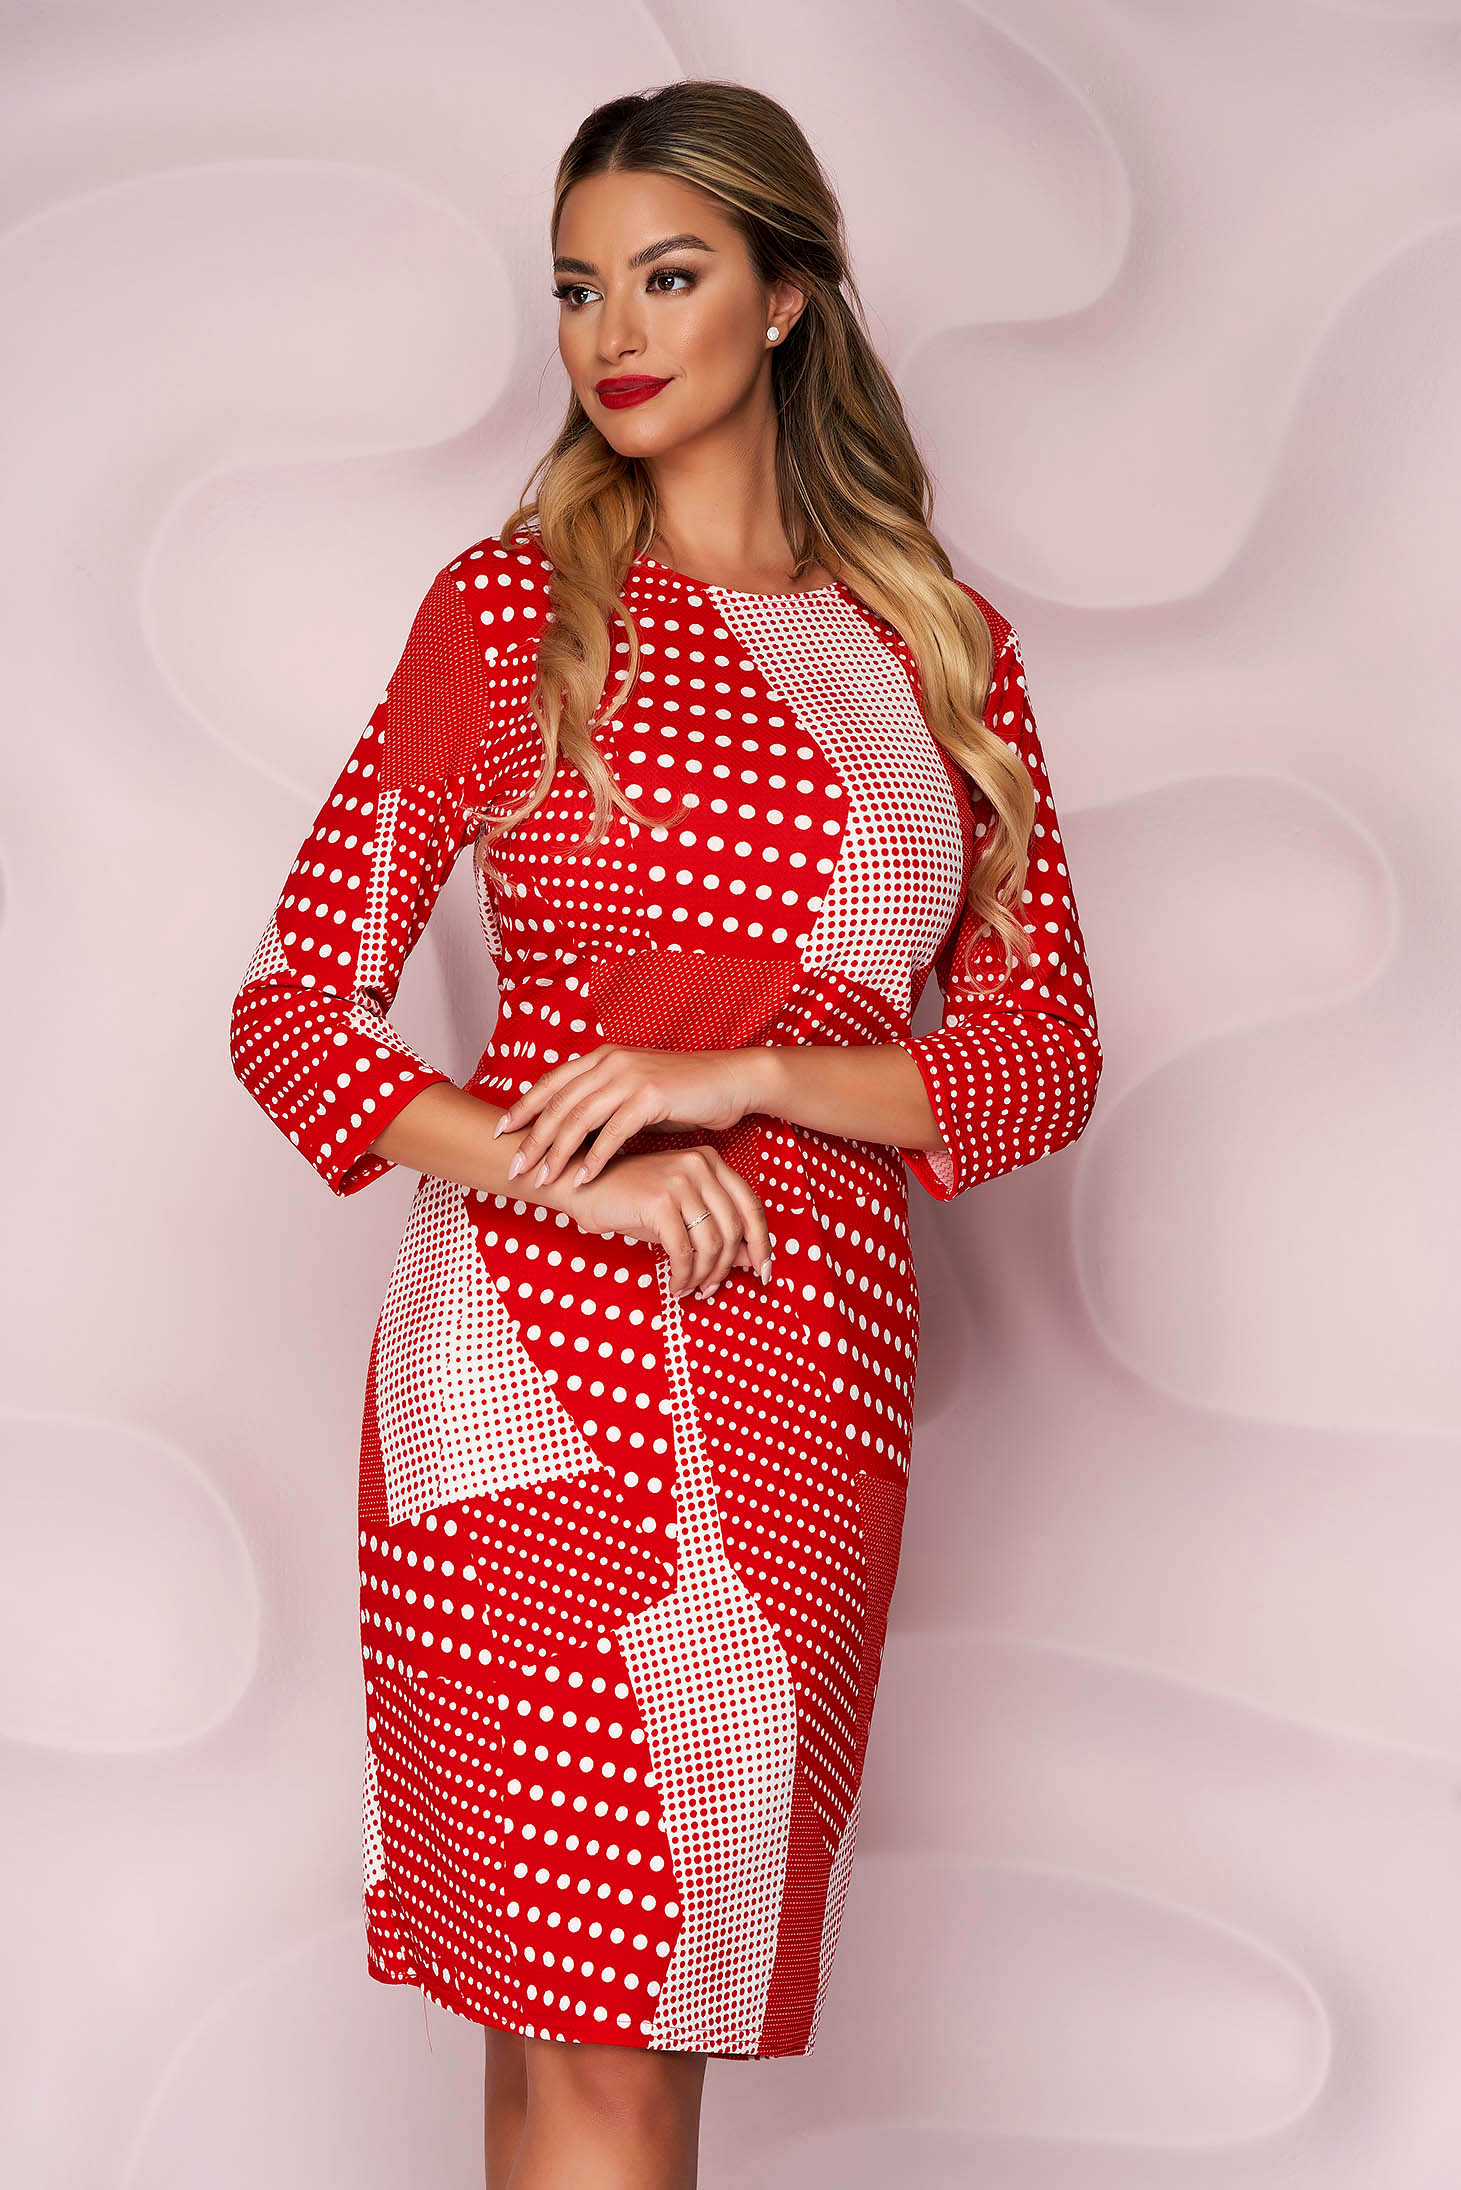 Dress pencil from elastic fabric wrinkled material dots print with 3/4 sleeves